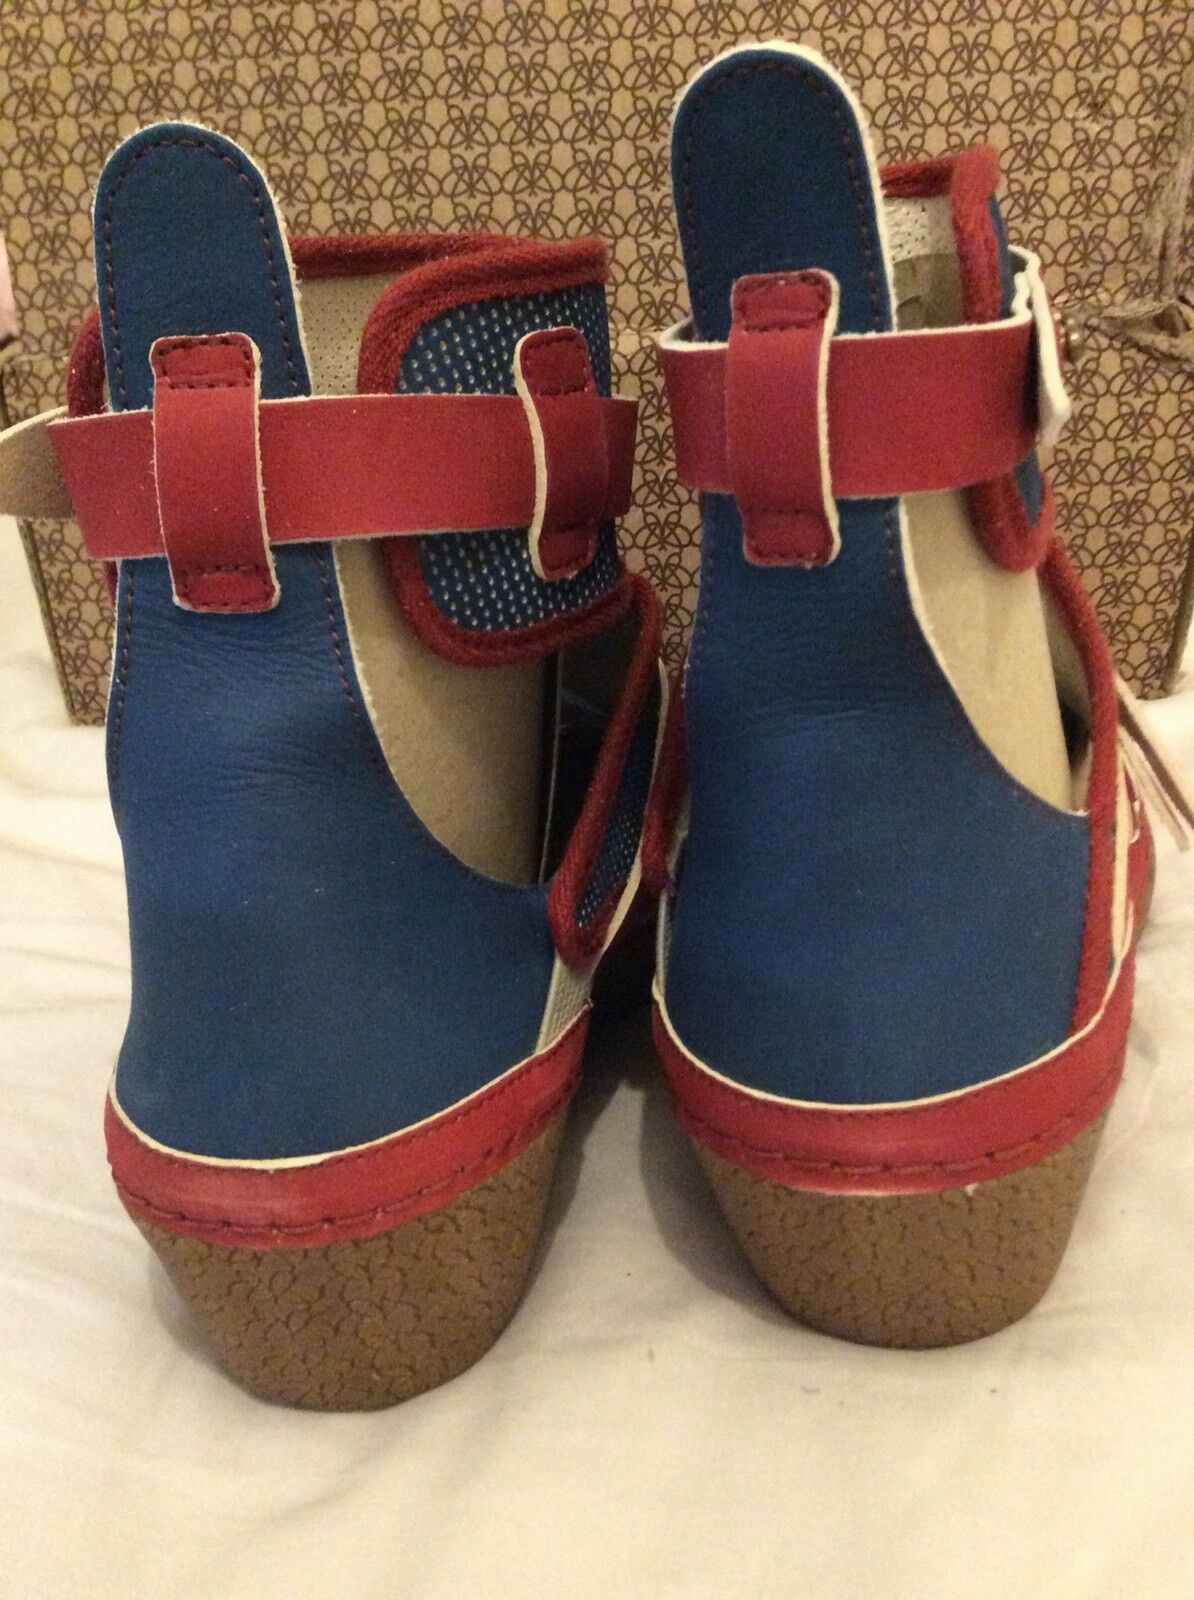 Po-Zu Ethical & & & Quirky rot & Blau Ankle Stiefel, UK 7 EU 41 Natural Latex Wedge 67a146